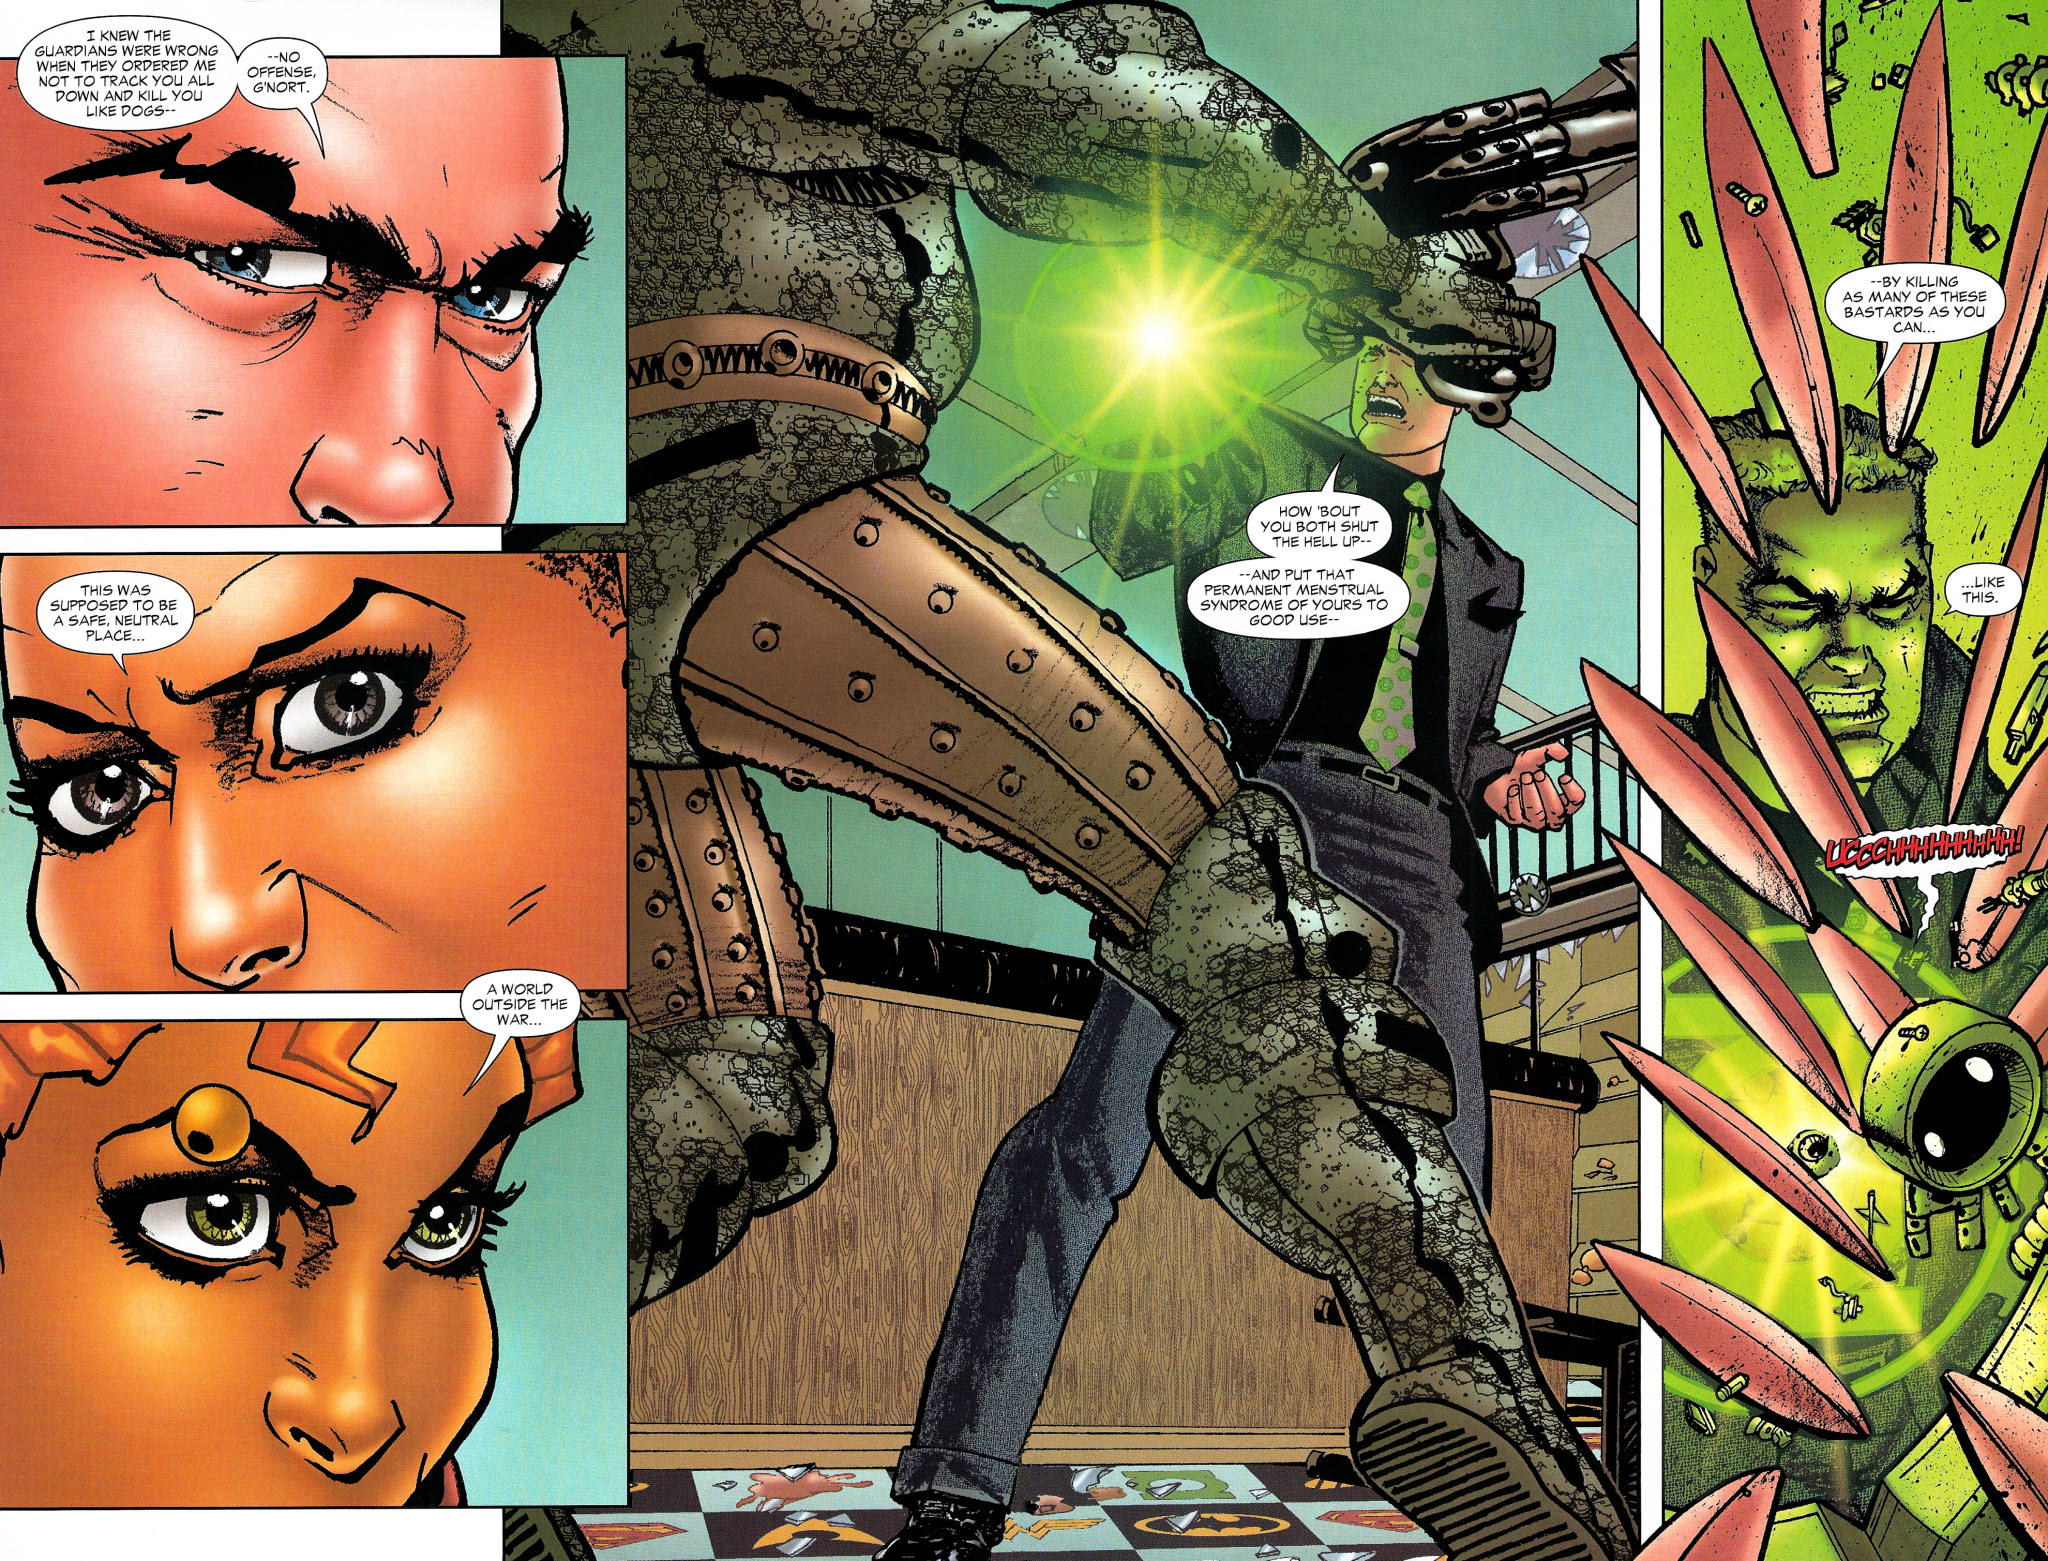 Read online Guy Gardner: Collateral Damage comic -  Issue #1 - 41